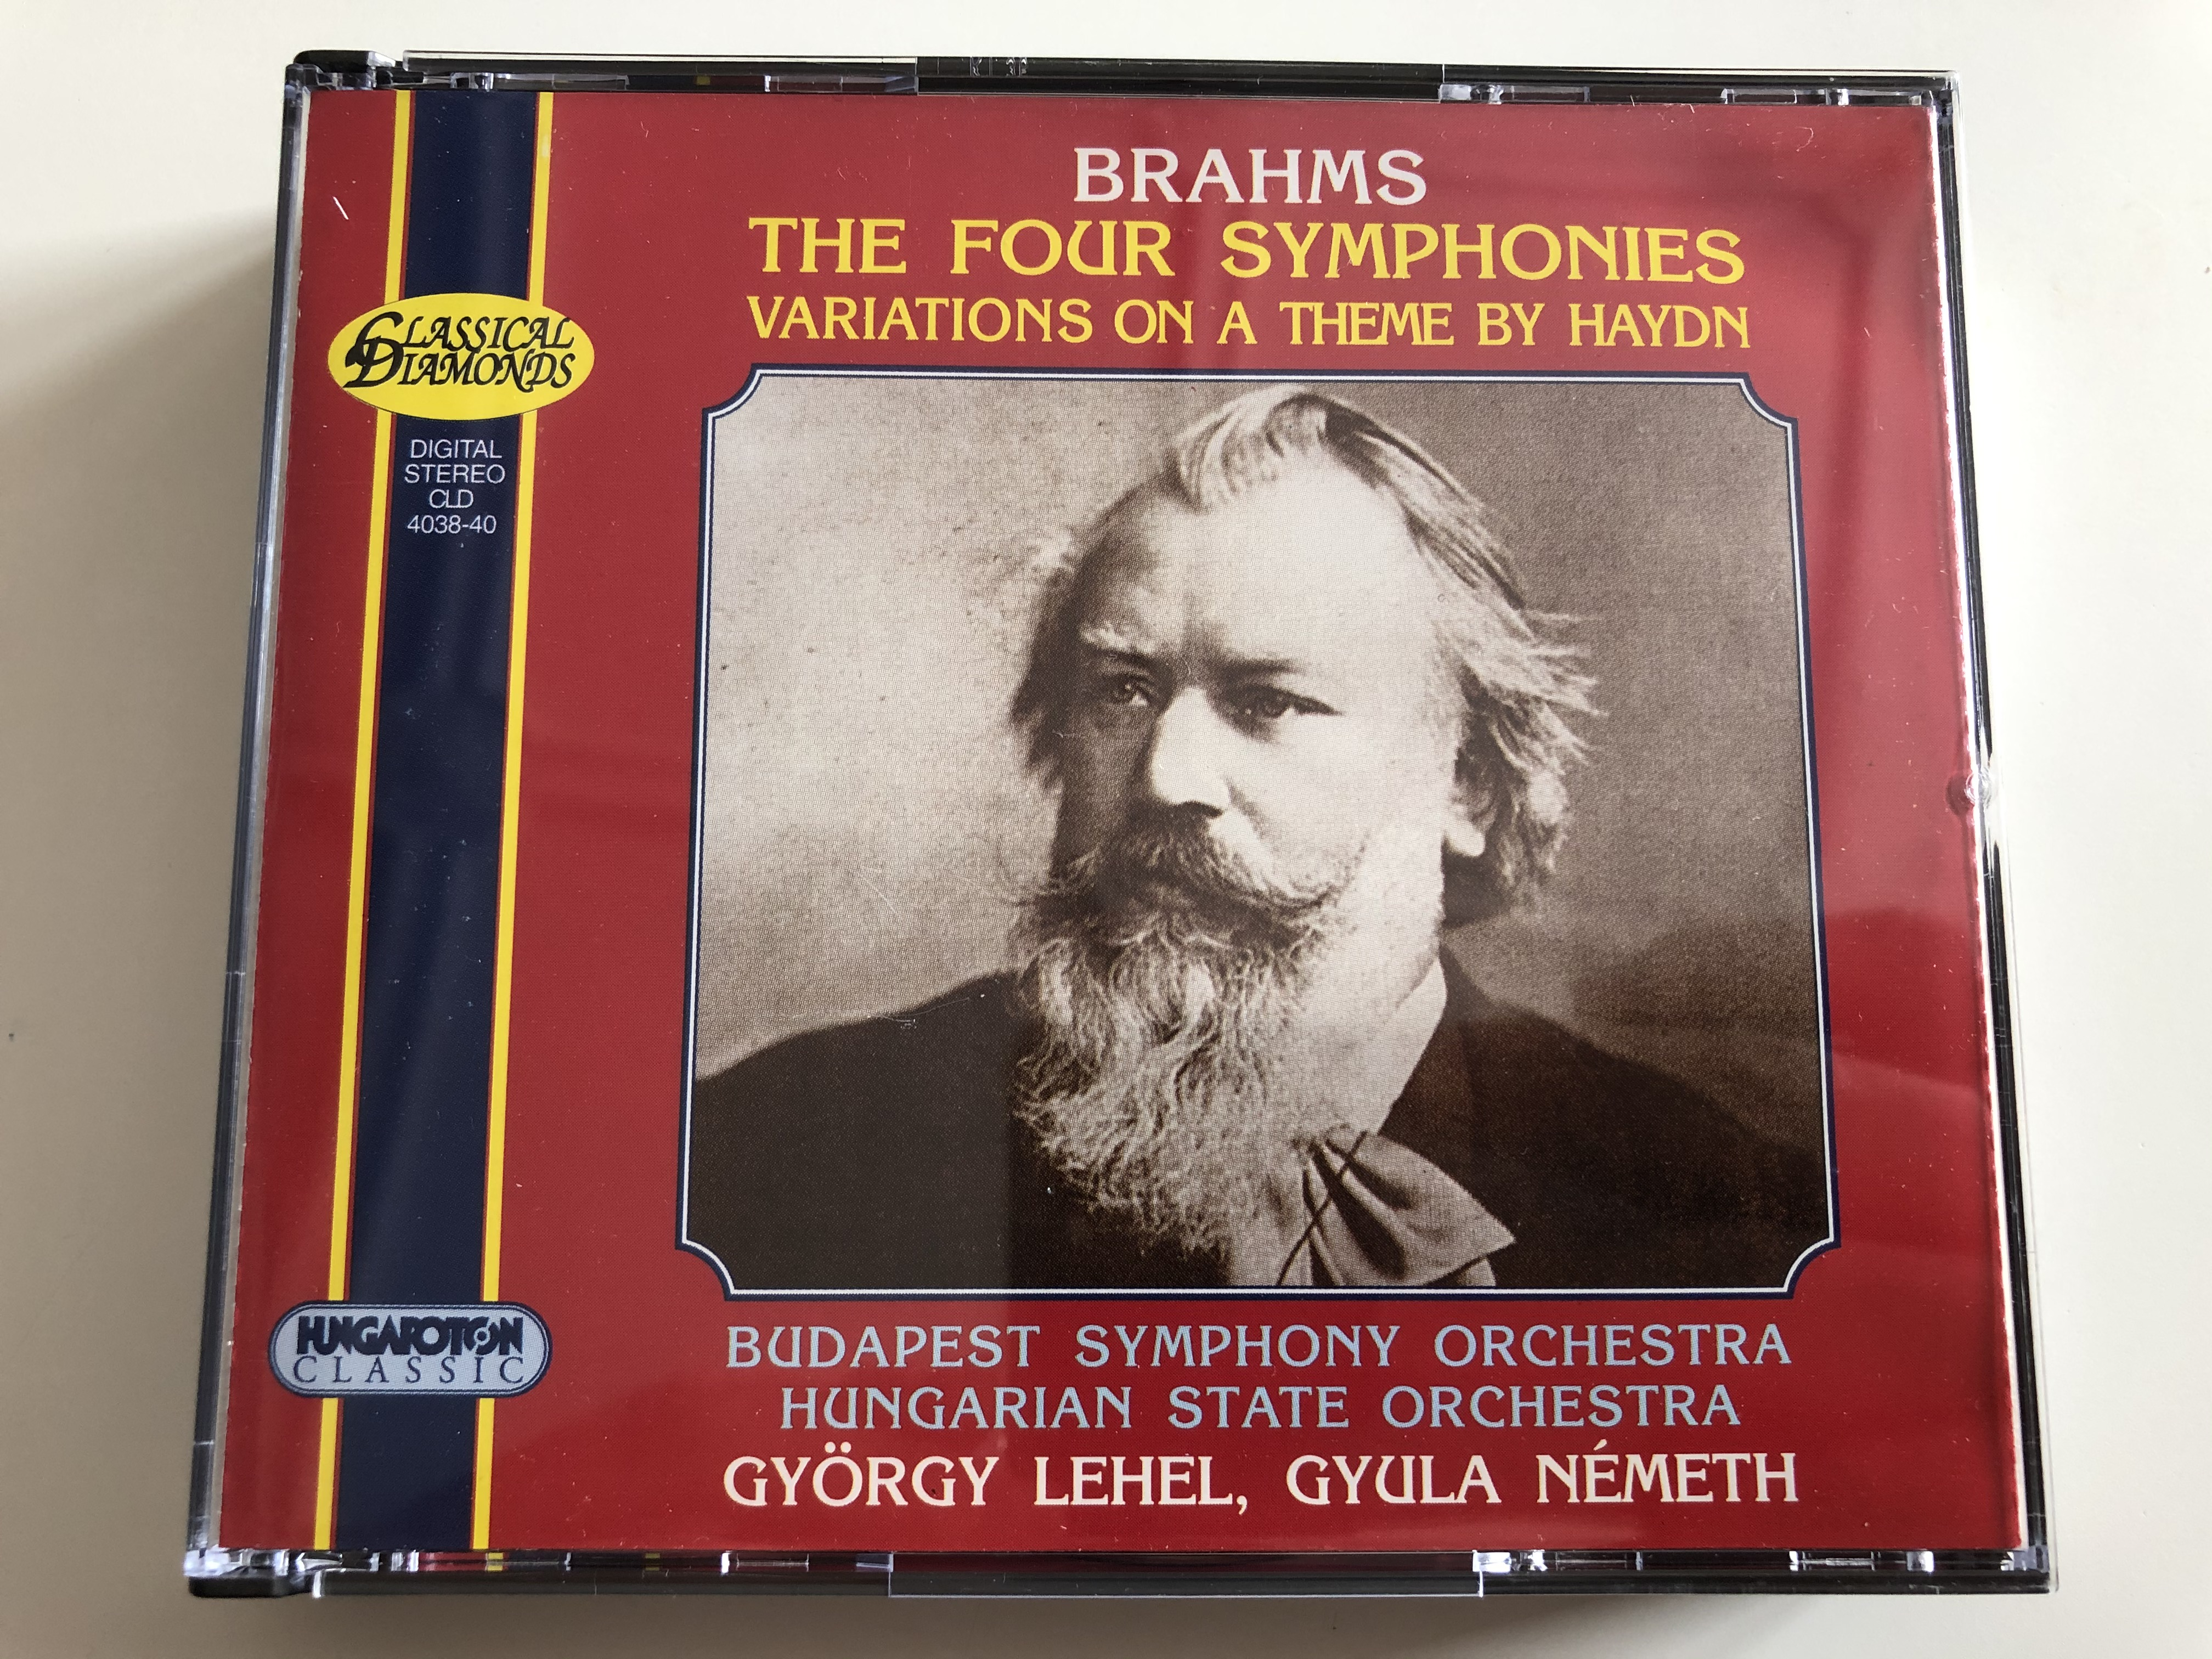 brahms-the-four-symphonies-variations-on-a-theme-by-haydn-budapest-symphony-orchestra-hungarian-state-orchestra-gyorgy-lehel-gyula-nemeth-hungaroton-classic-3x-audio-cd-1998-stereo-cld-4-1-.jpg